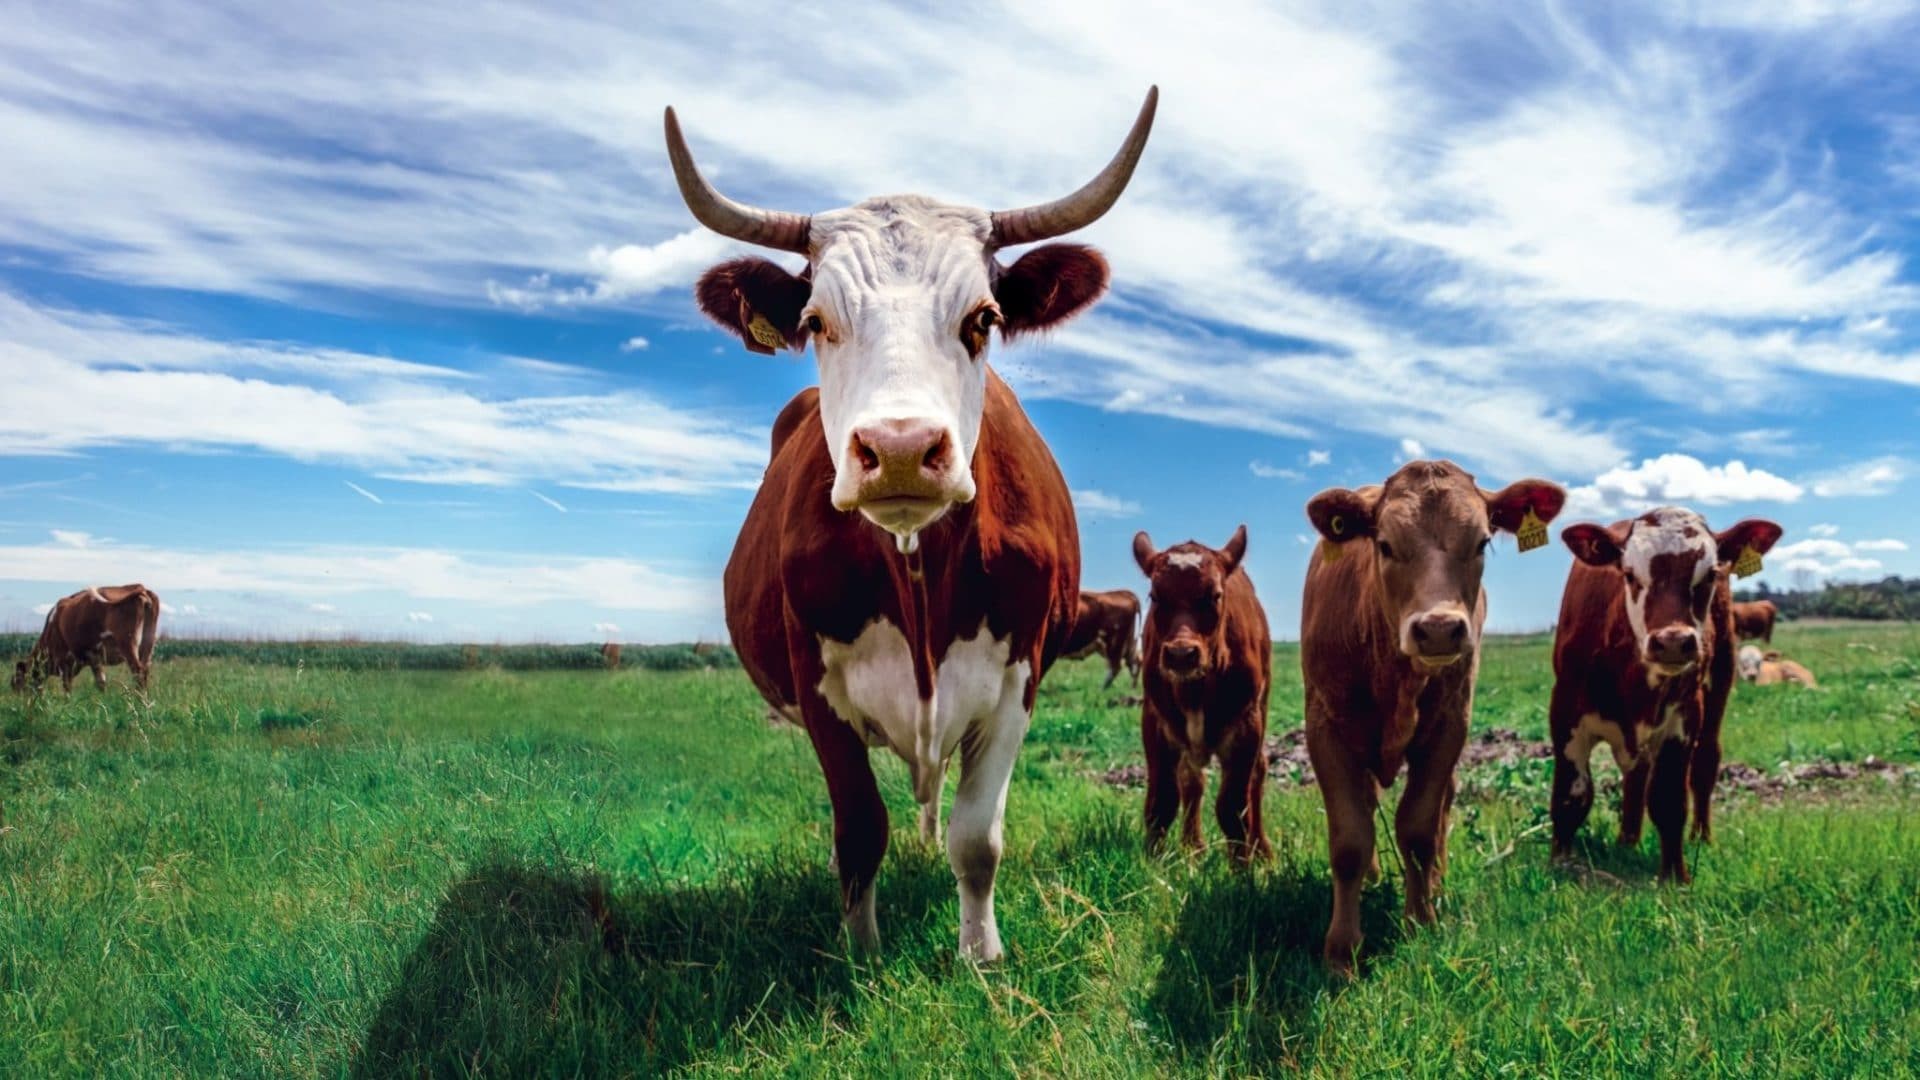 Herd of cows outnumbering humans in Montana